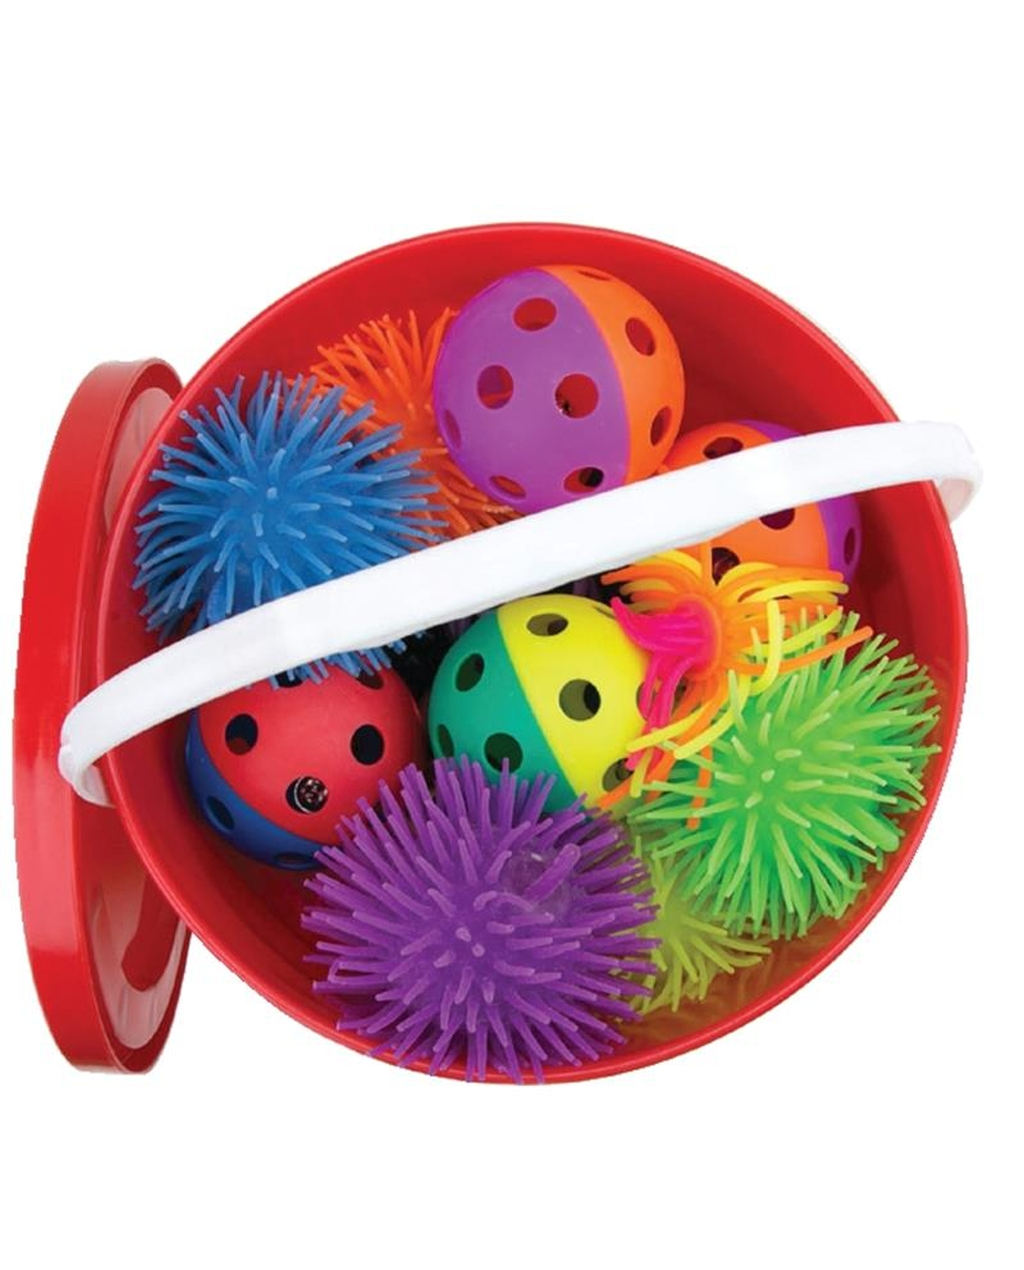 First Play Sensory Ball Essential Tub